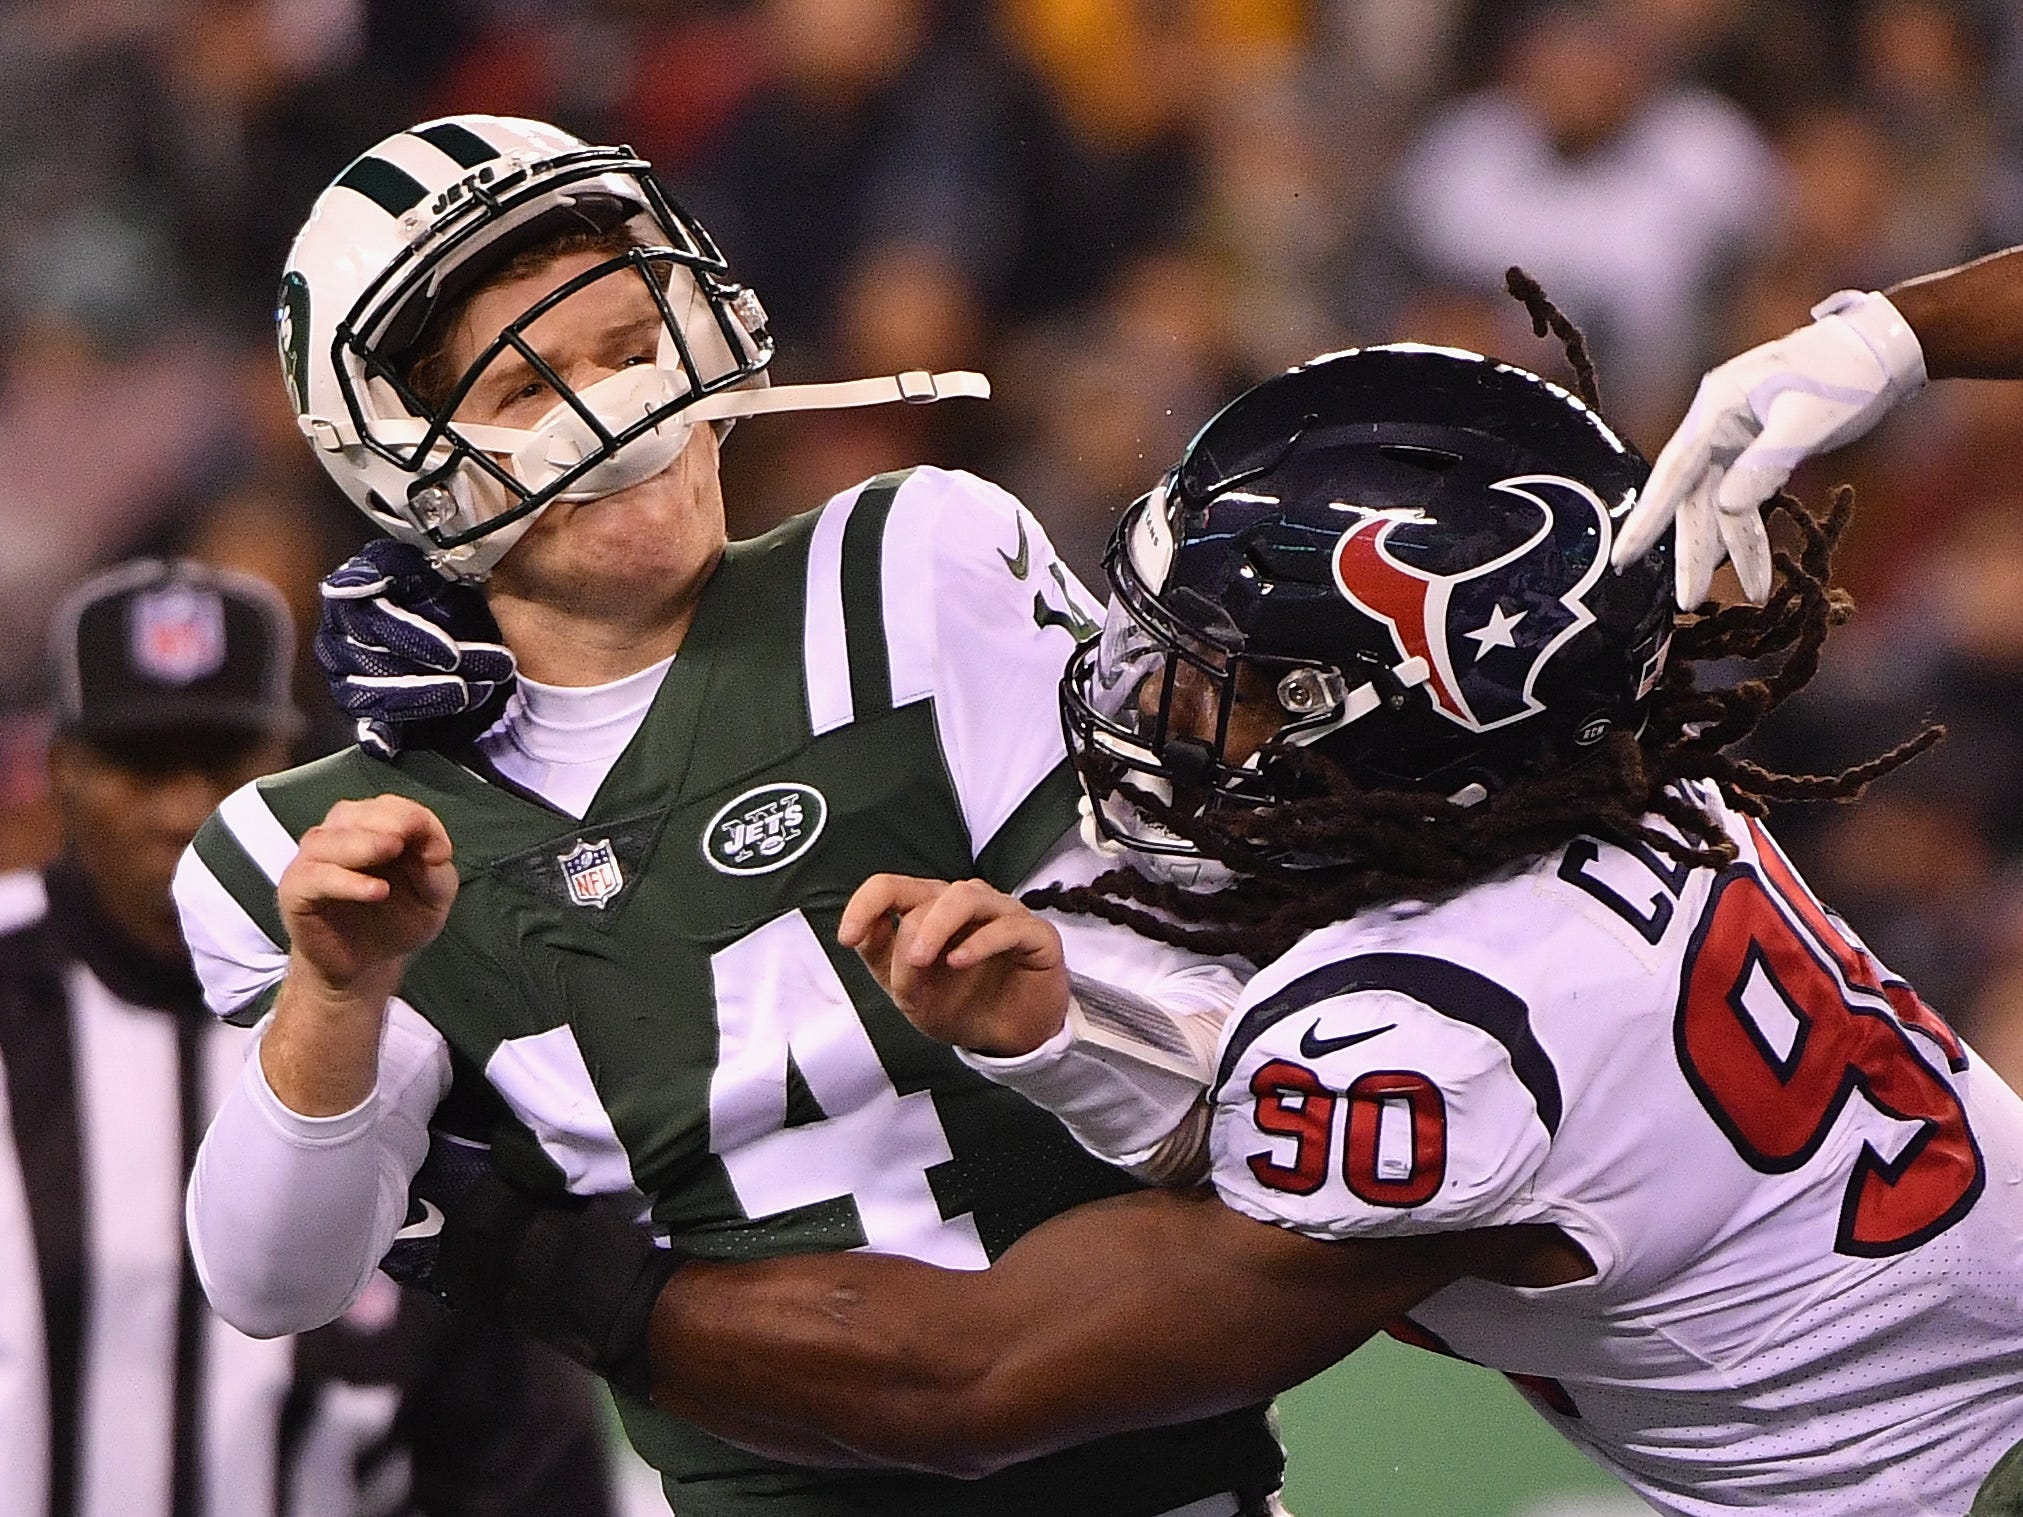 Jadeveon Clowney, DE/OLB, Houston: The former No. 1 pick comes with plenty of concerns about his durability, but he's only missed three games the past three years. The athleticism is still off the charts, and at 25, he's just entering his prime. He's recorded at least nine sacks each of the past two seasons, with 59 and 64 pressures those two seasons.